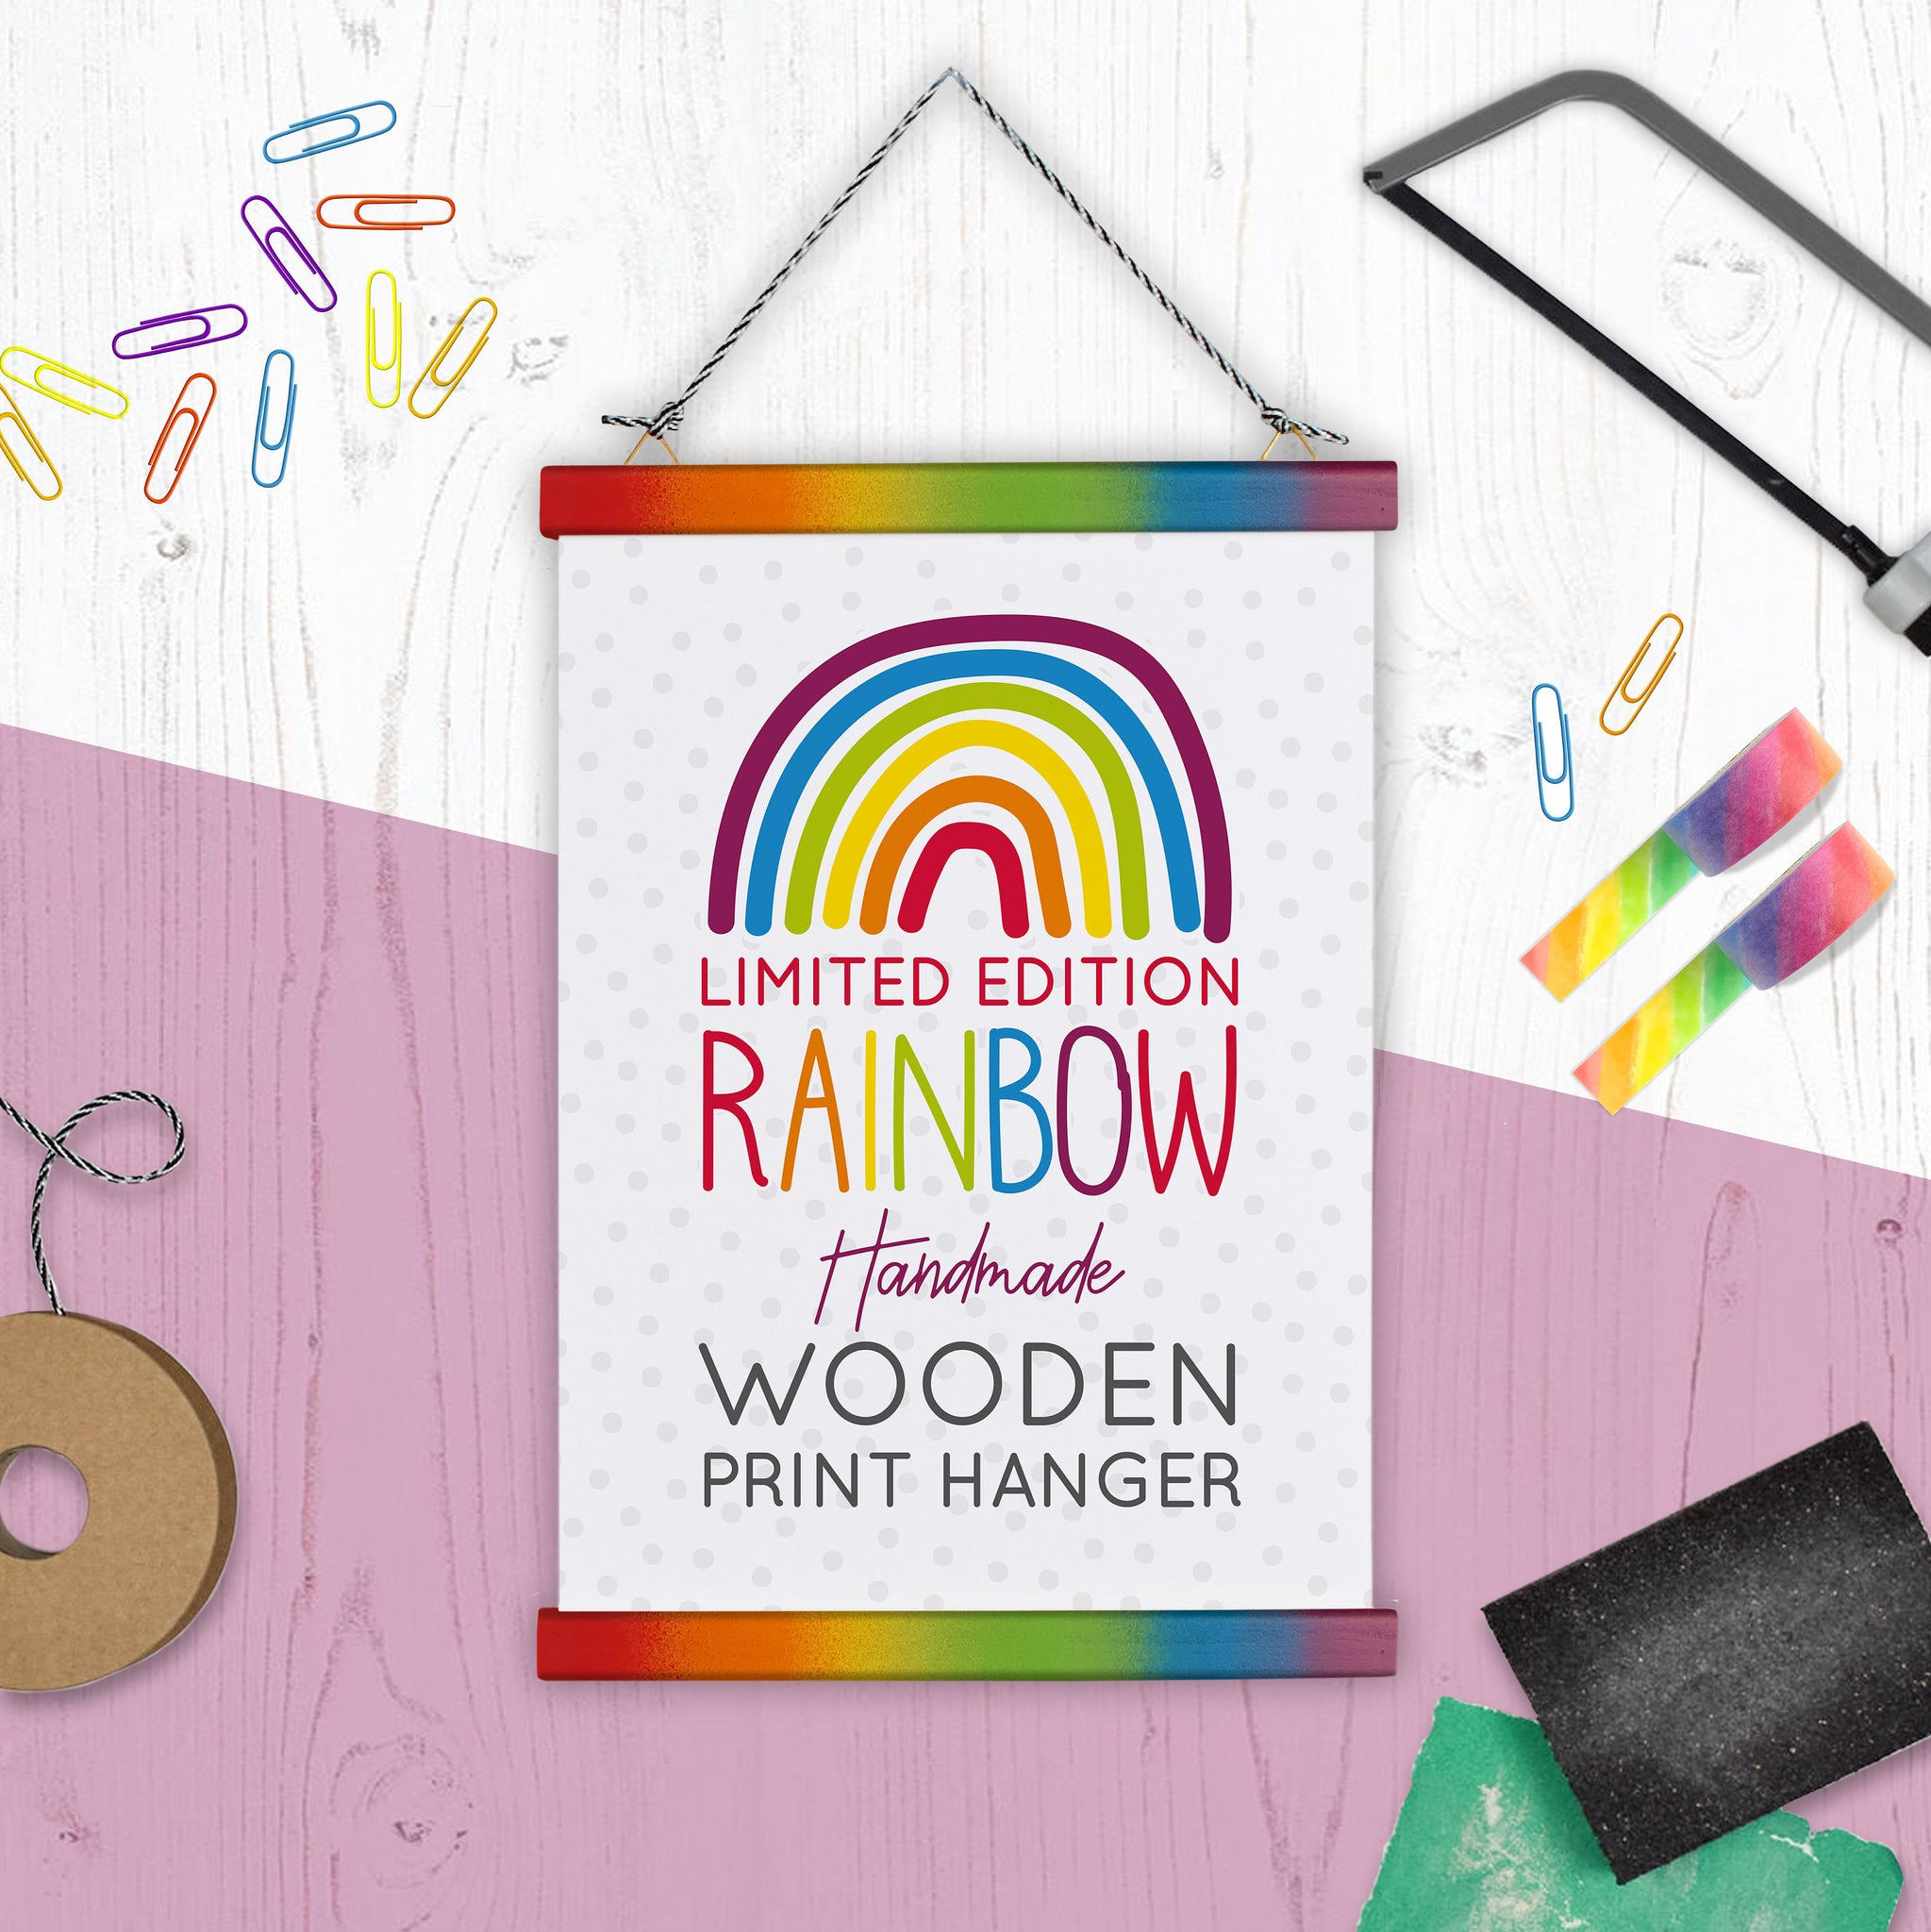 Rainbow Print Hanger - Wooden & Magnetic - Handmade in the UK - A4 A5 A3 - Multi size listing - Two For Joy Illustration